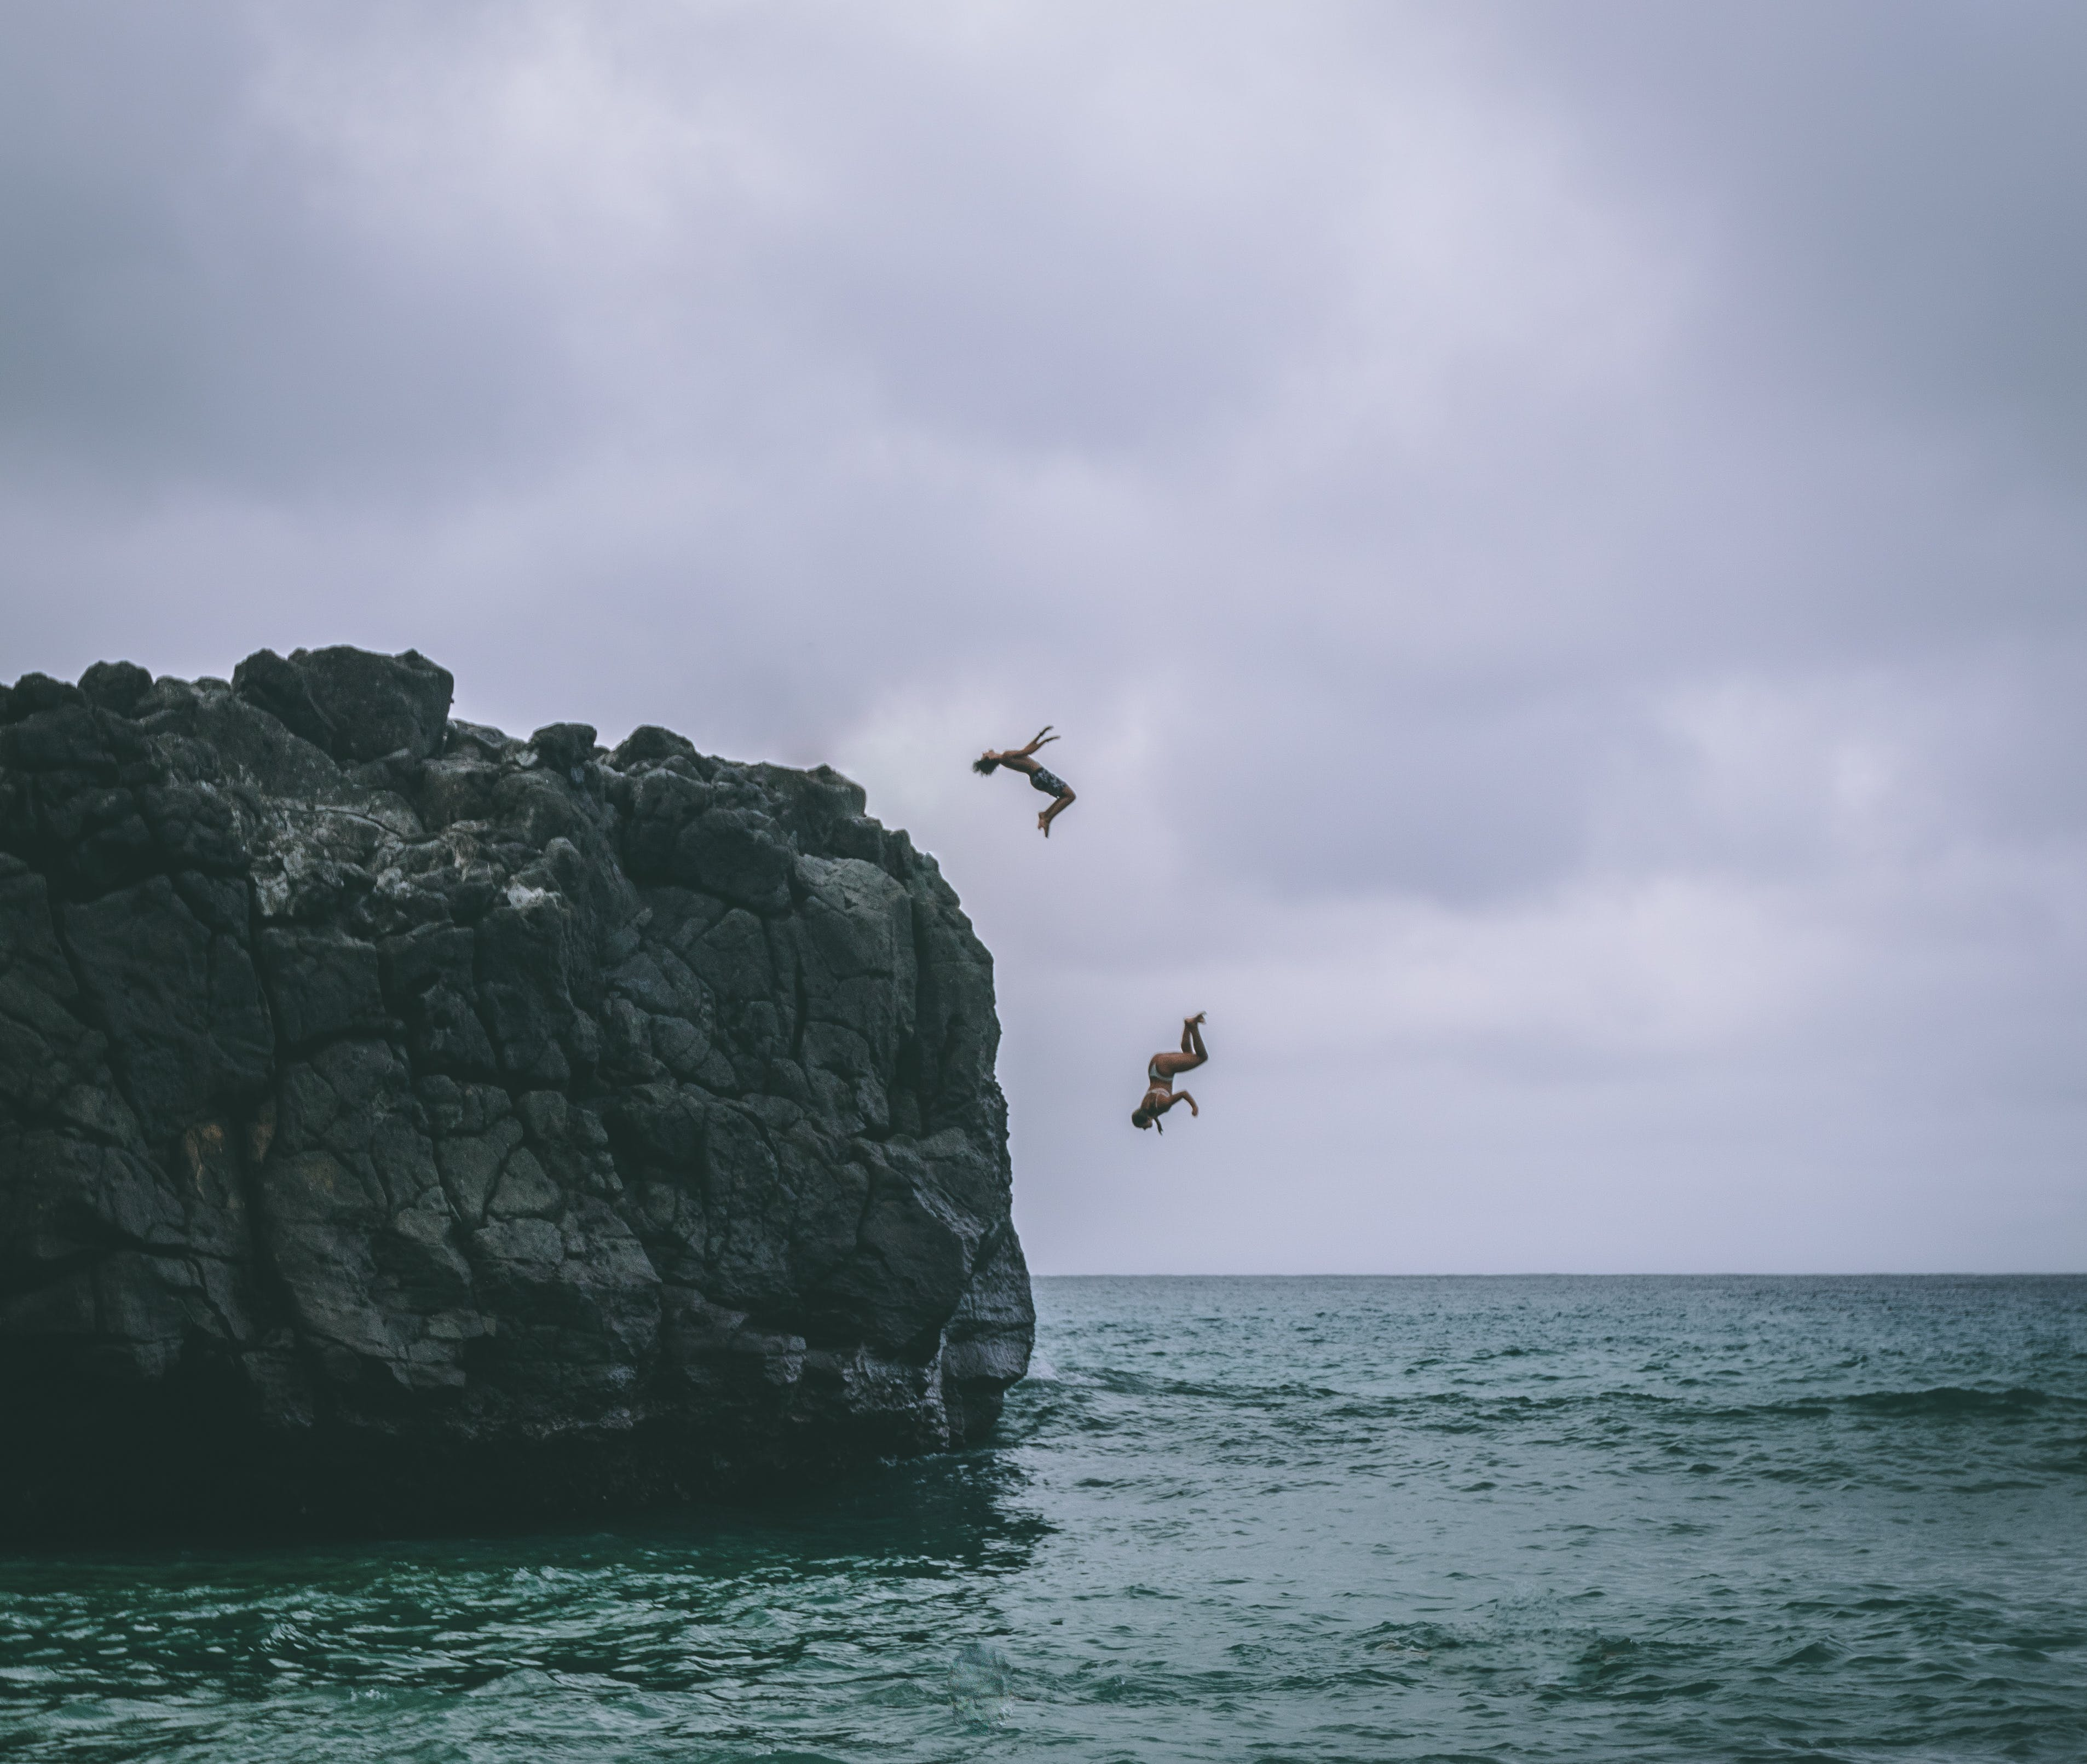 Two People Jumping on Body of Water